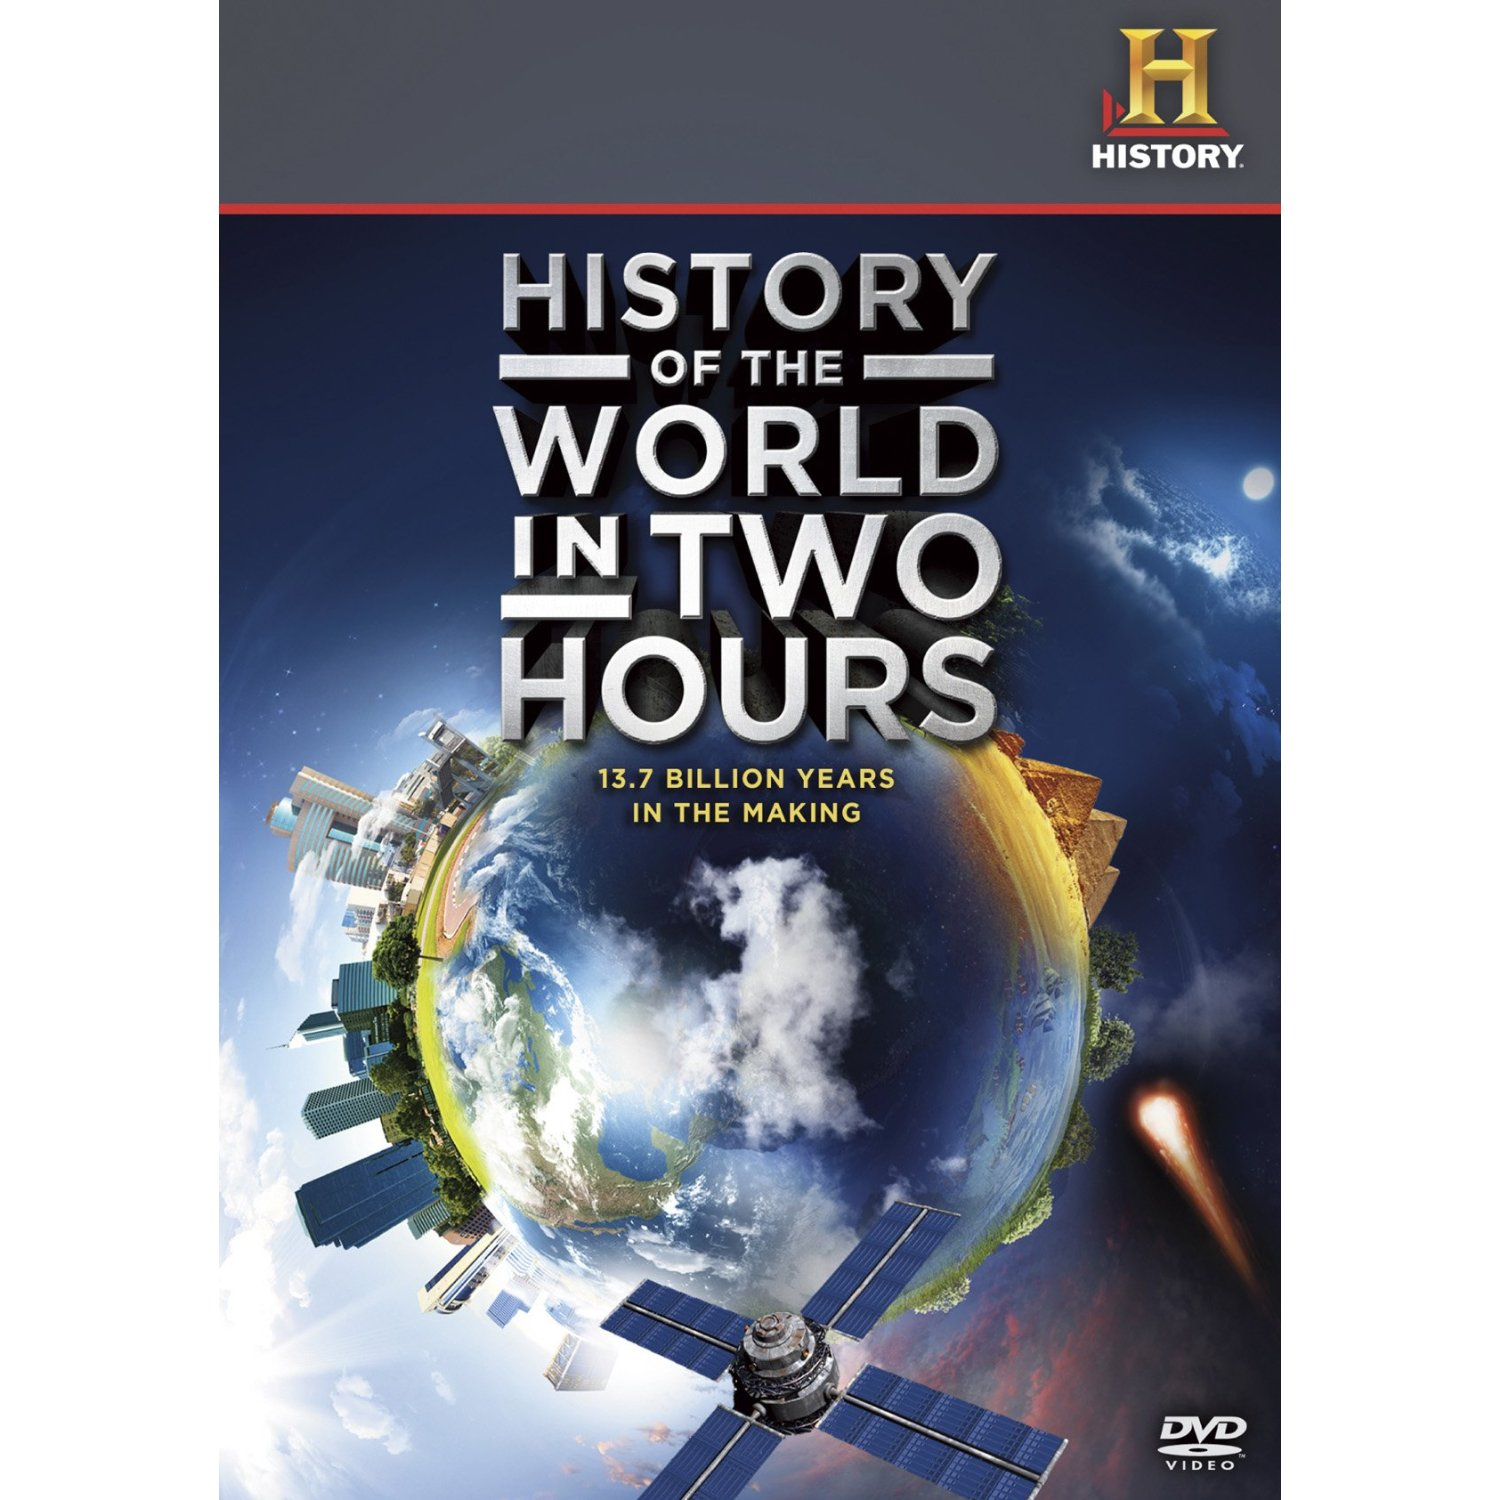 The History of the World in Two Hours